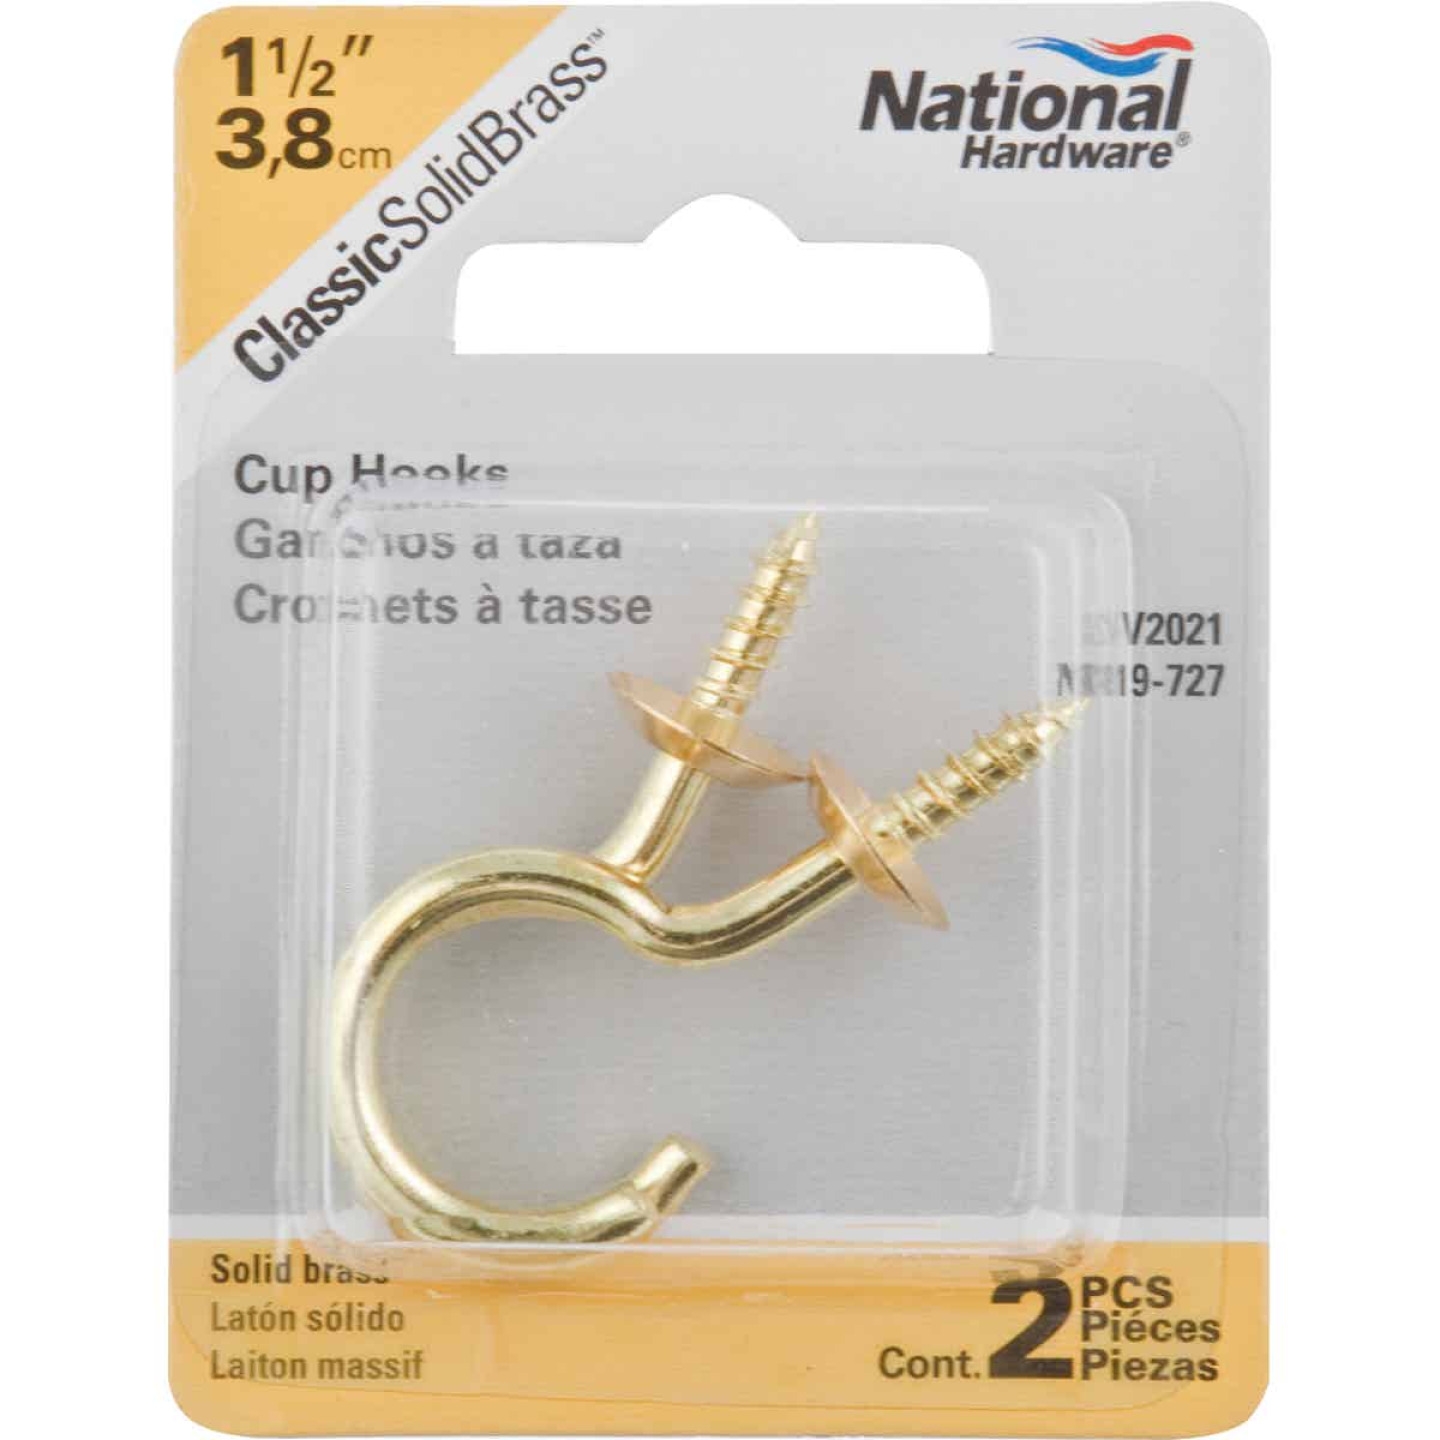 National V2021 1-1/2 In. Solid Brass Series Cup Hook (2 Count) Image 2